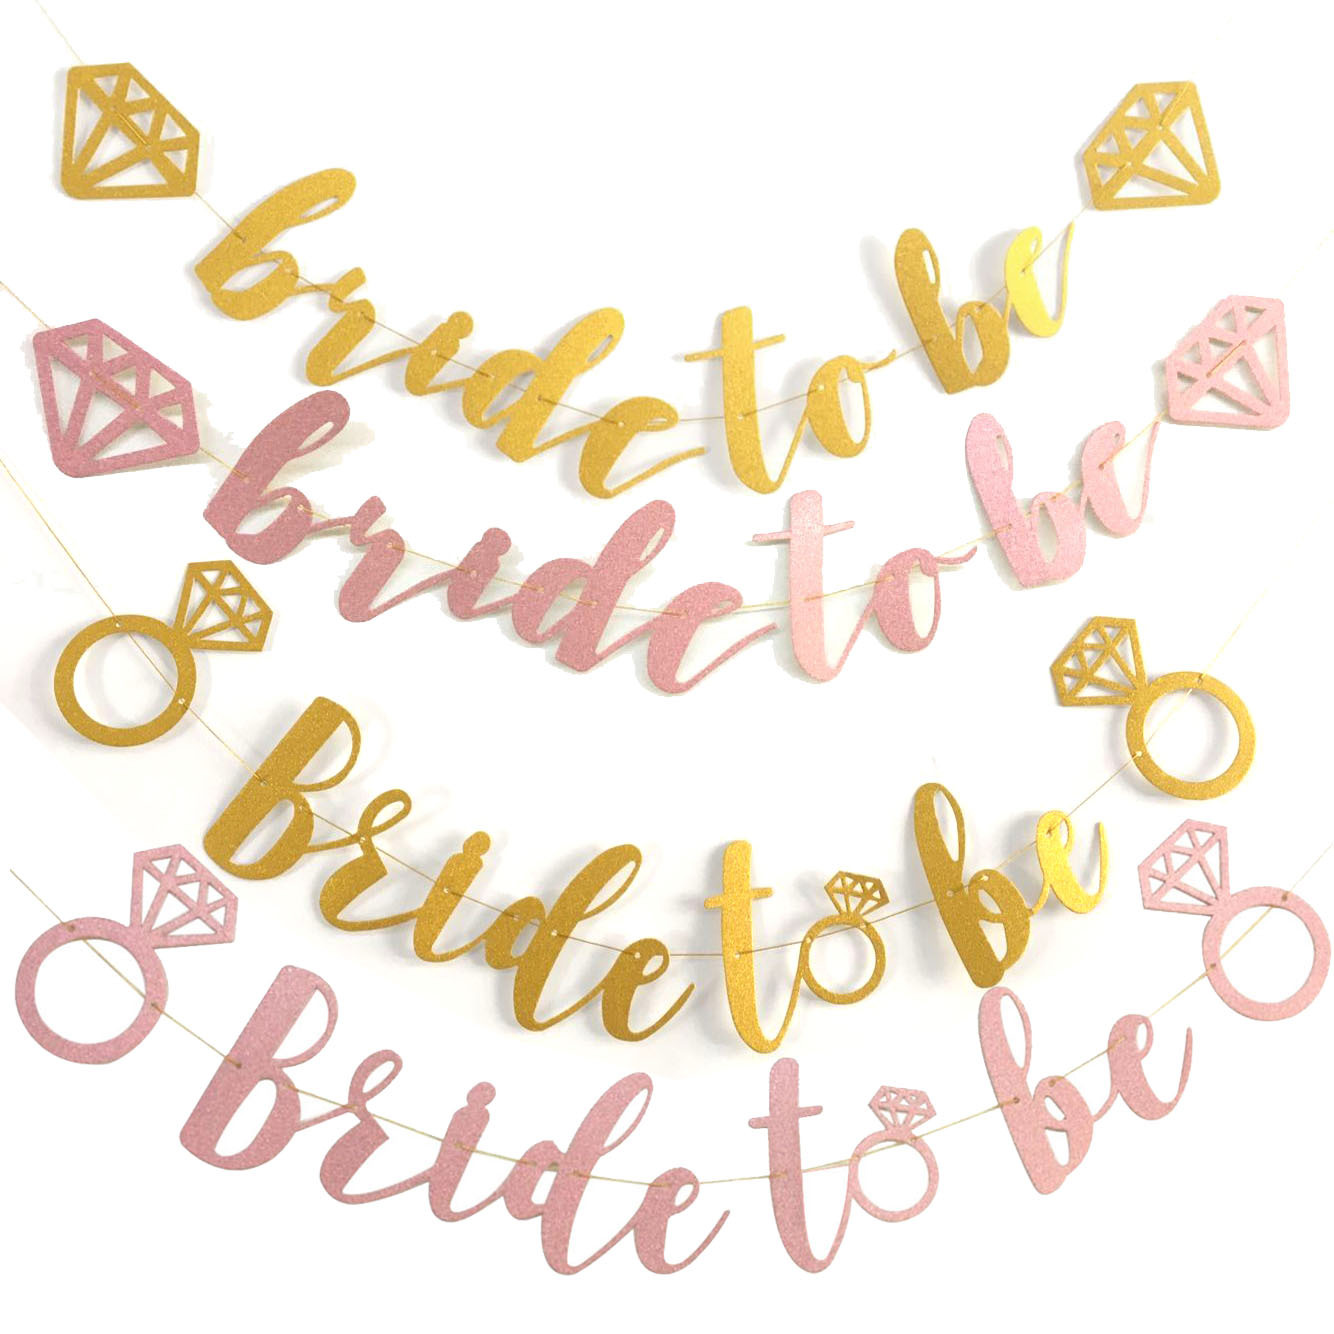 Bride To Be Banners Pulling Flag With Diamond Ring Glitter Wedding Hanging Flags Gold & Rose Gold For Wedding Party Accessories